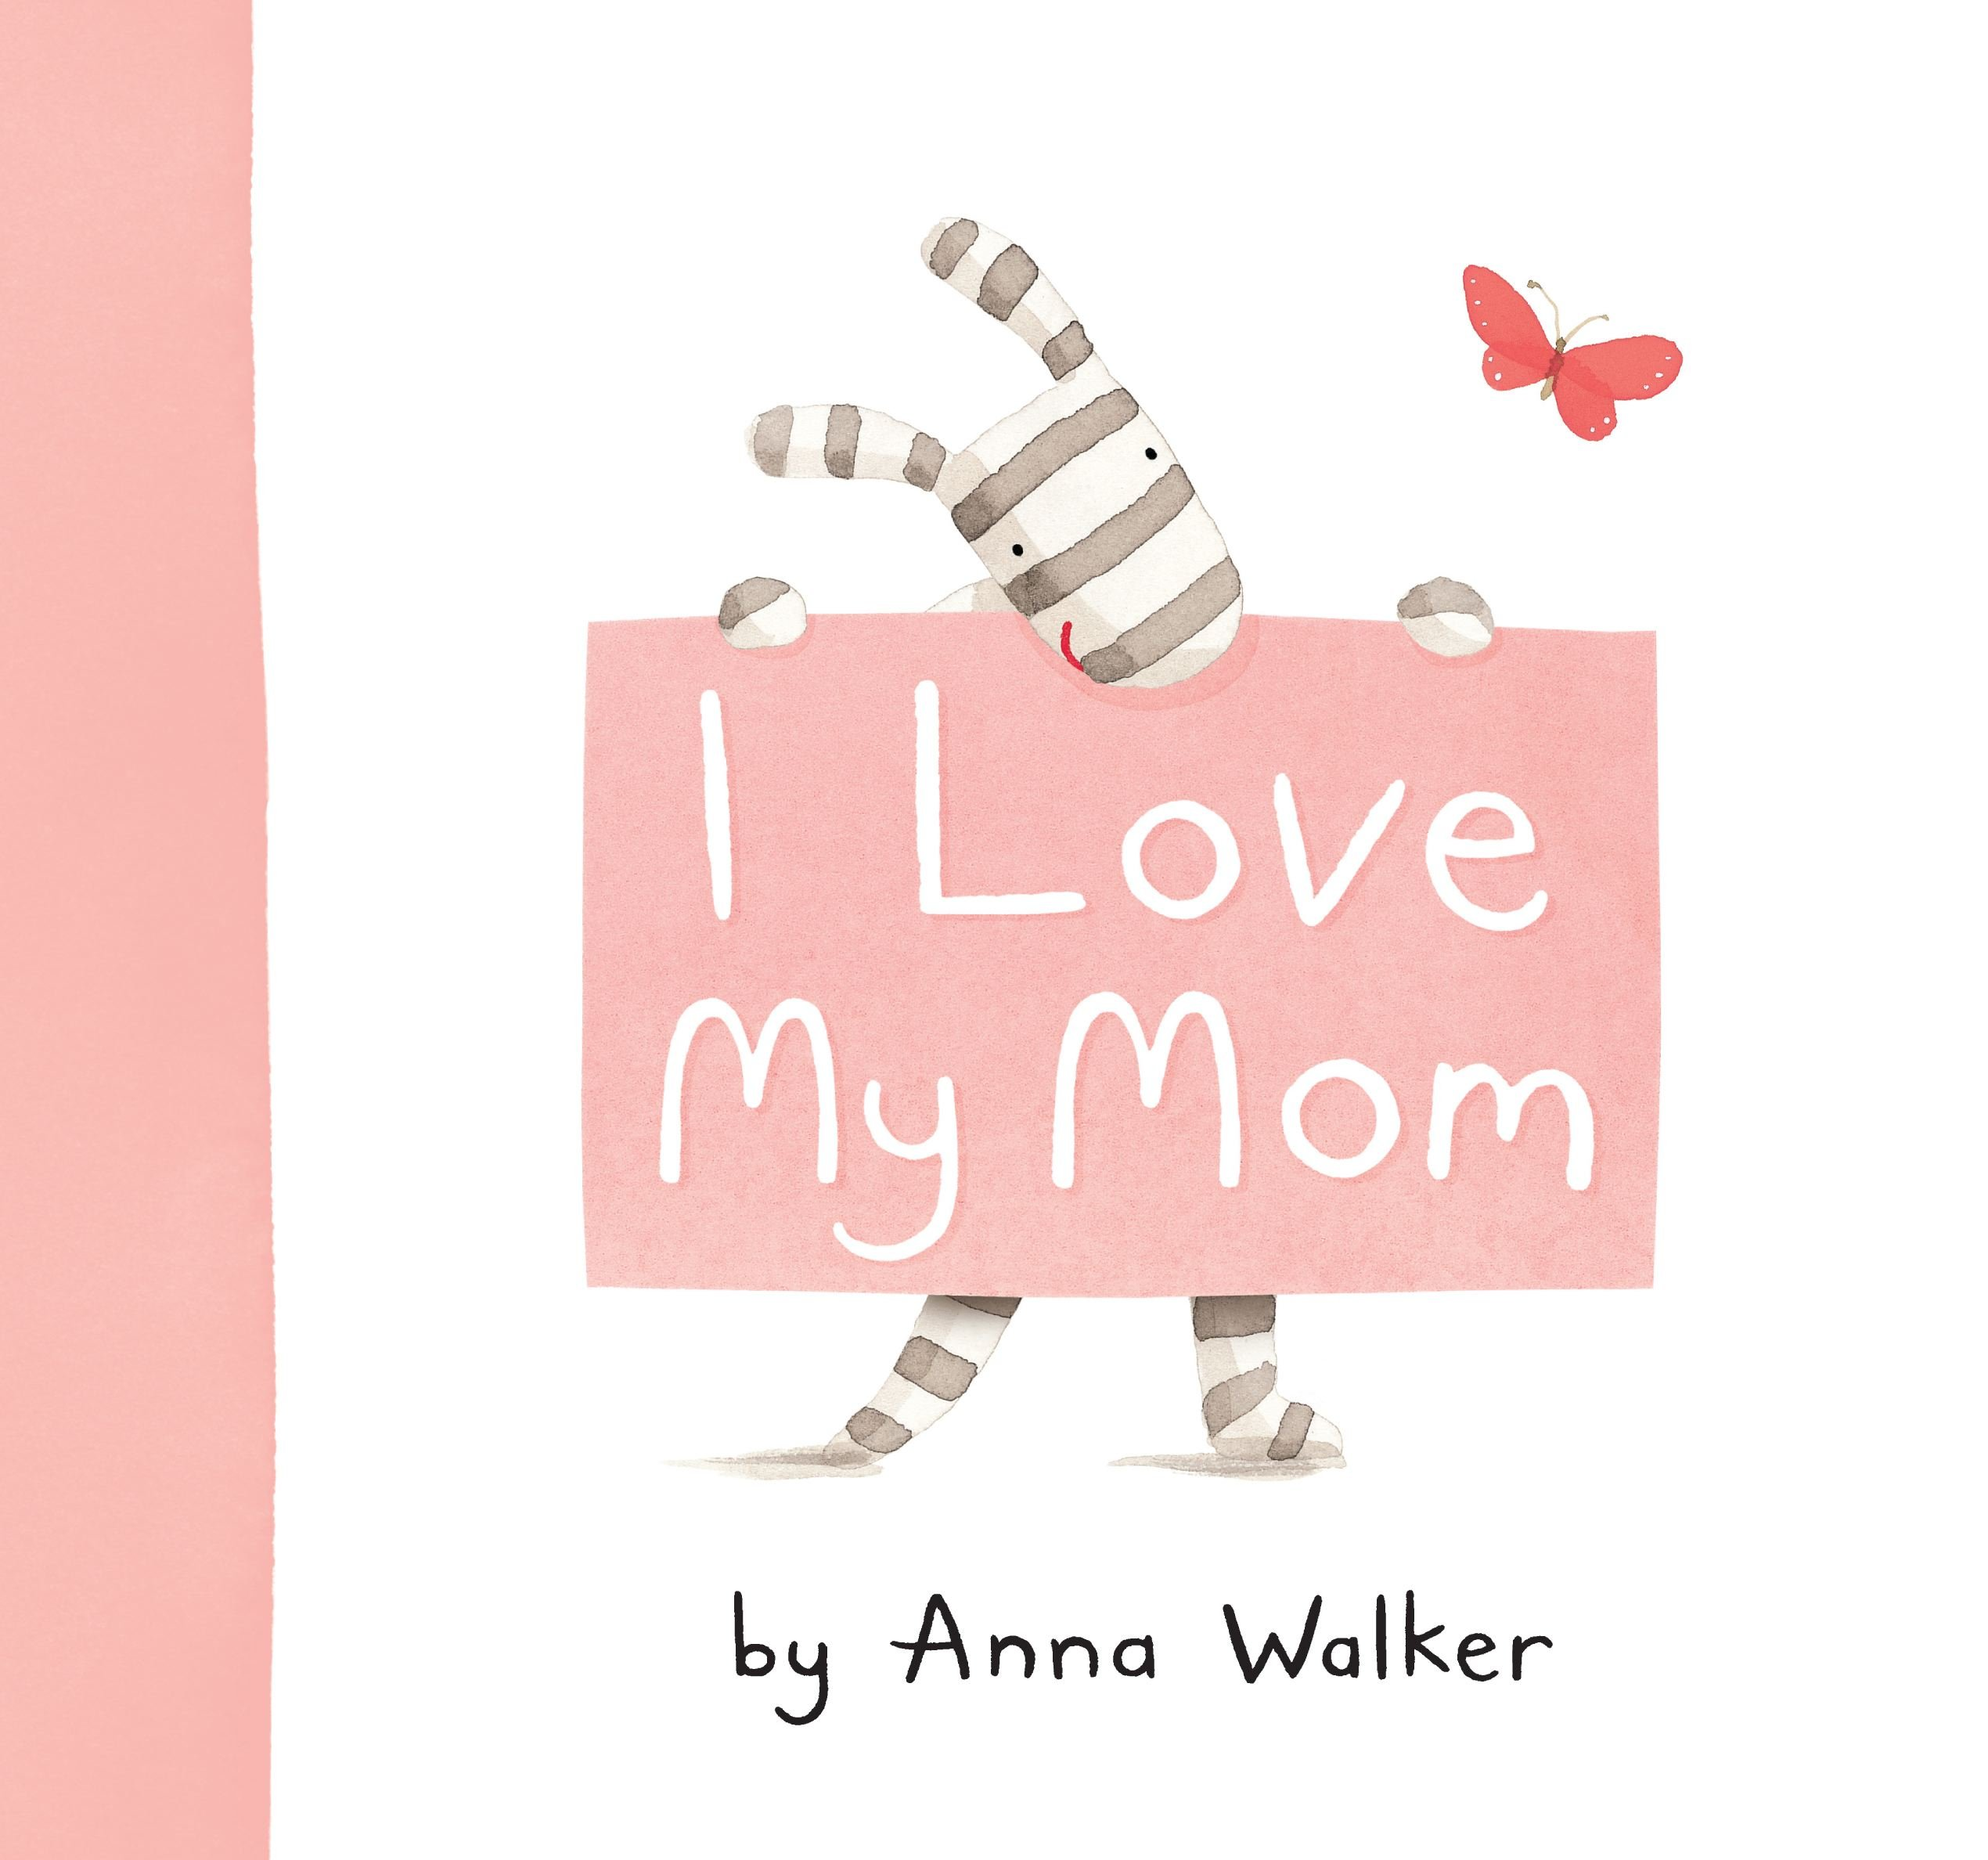 I Love My Mom Ollie The Zebra Anna Walker 9781416983187 Amazon